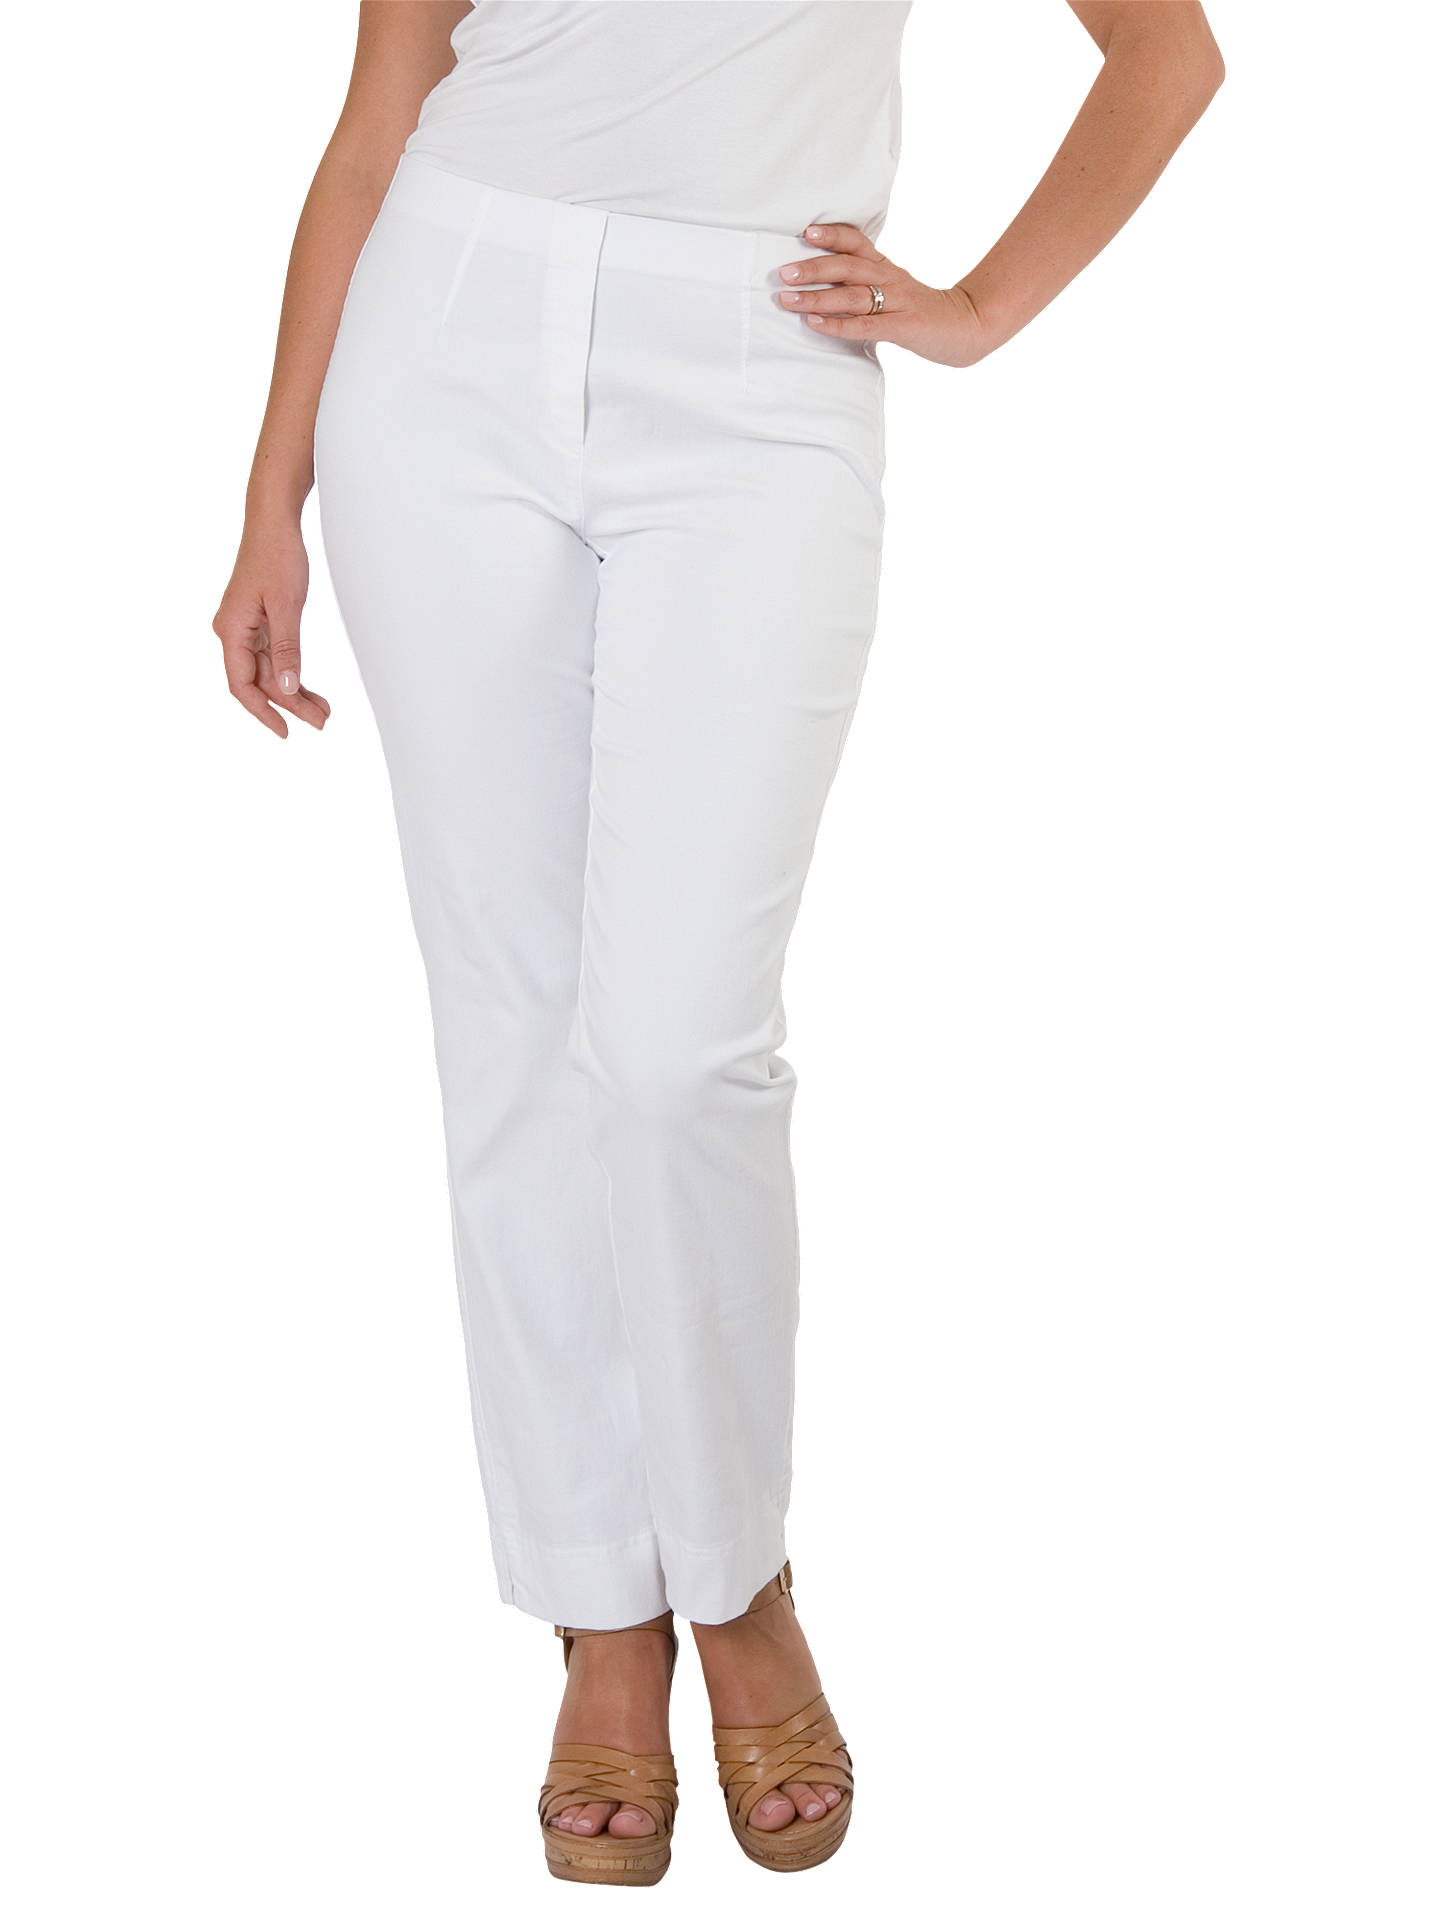 BuyChesca Denim Slim Leg Jeans, White, 14 Online at johnlewis.com